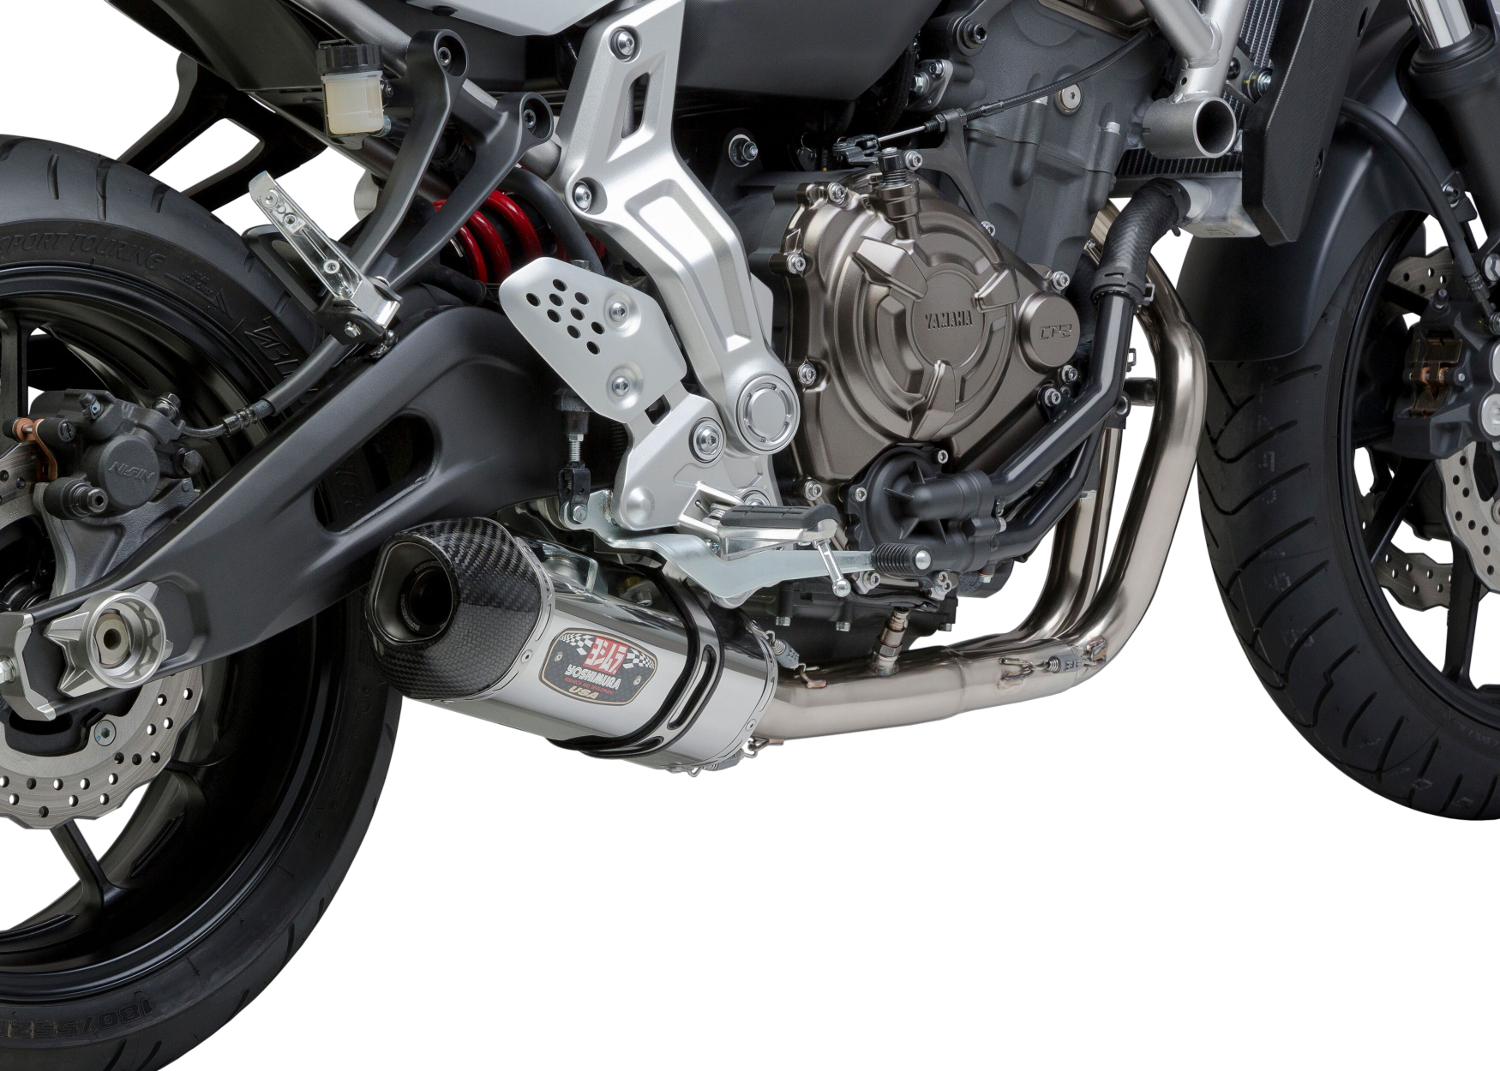 Race R77 Stainless Steel Full Exhaust - For 15-17 FZ07 & 2018 MT07